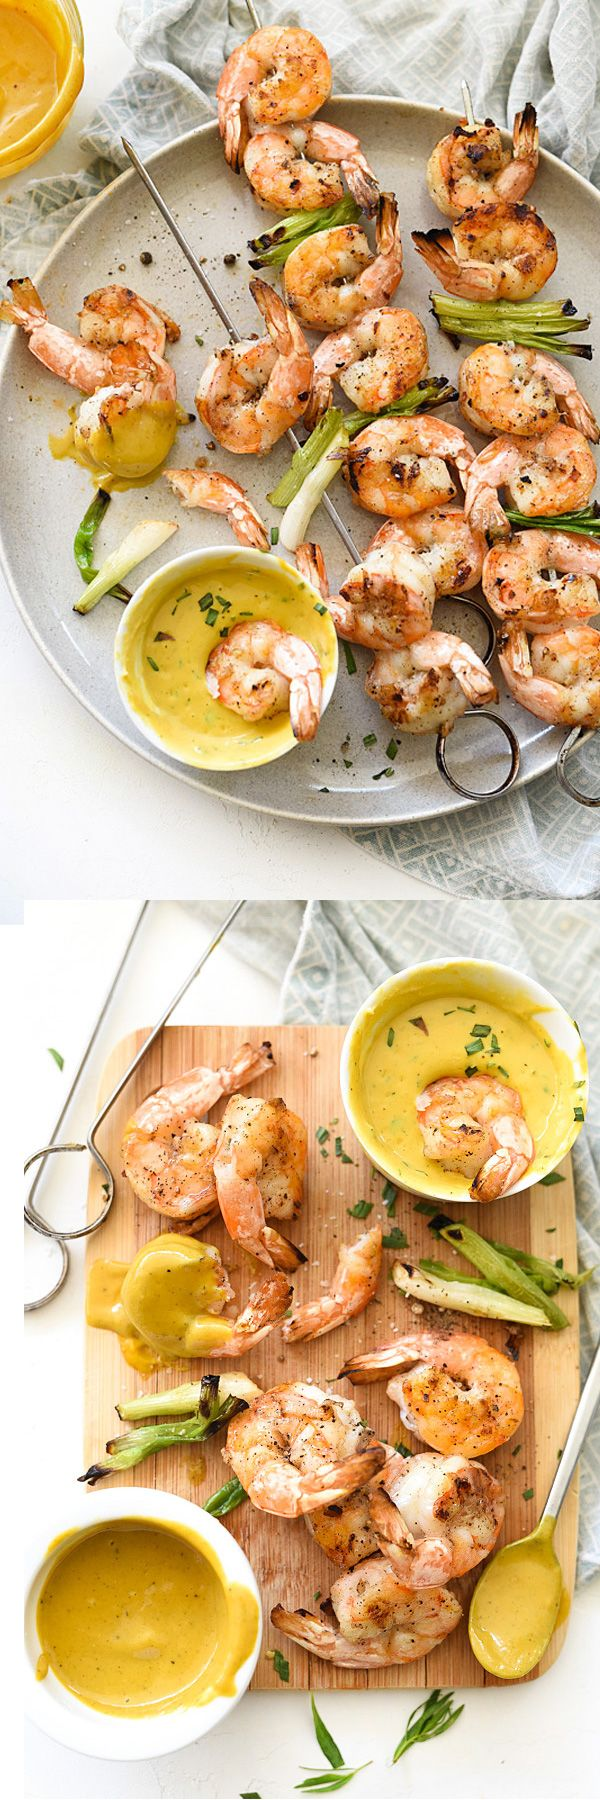 These shrimp take just minutes to cook and are so good dipped in mustard sauce. A perfect appetizer or main meal | foodiecrush.com